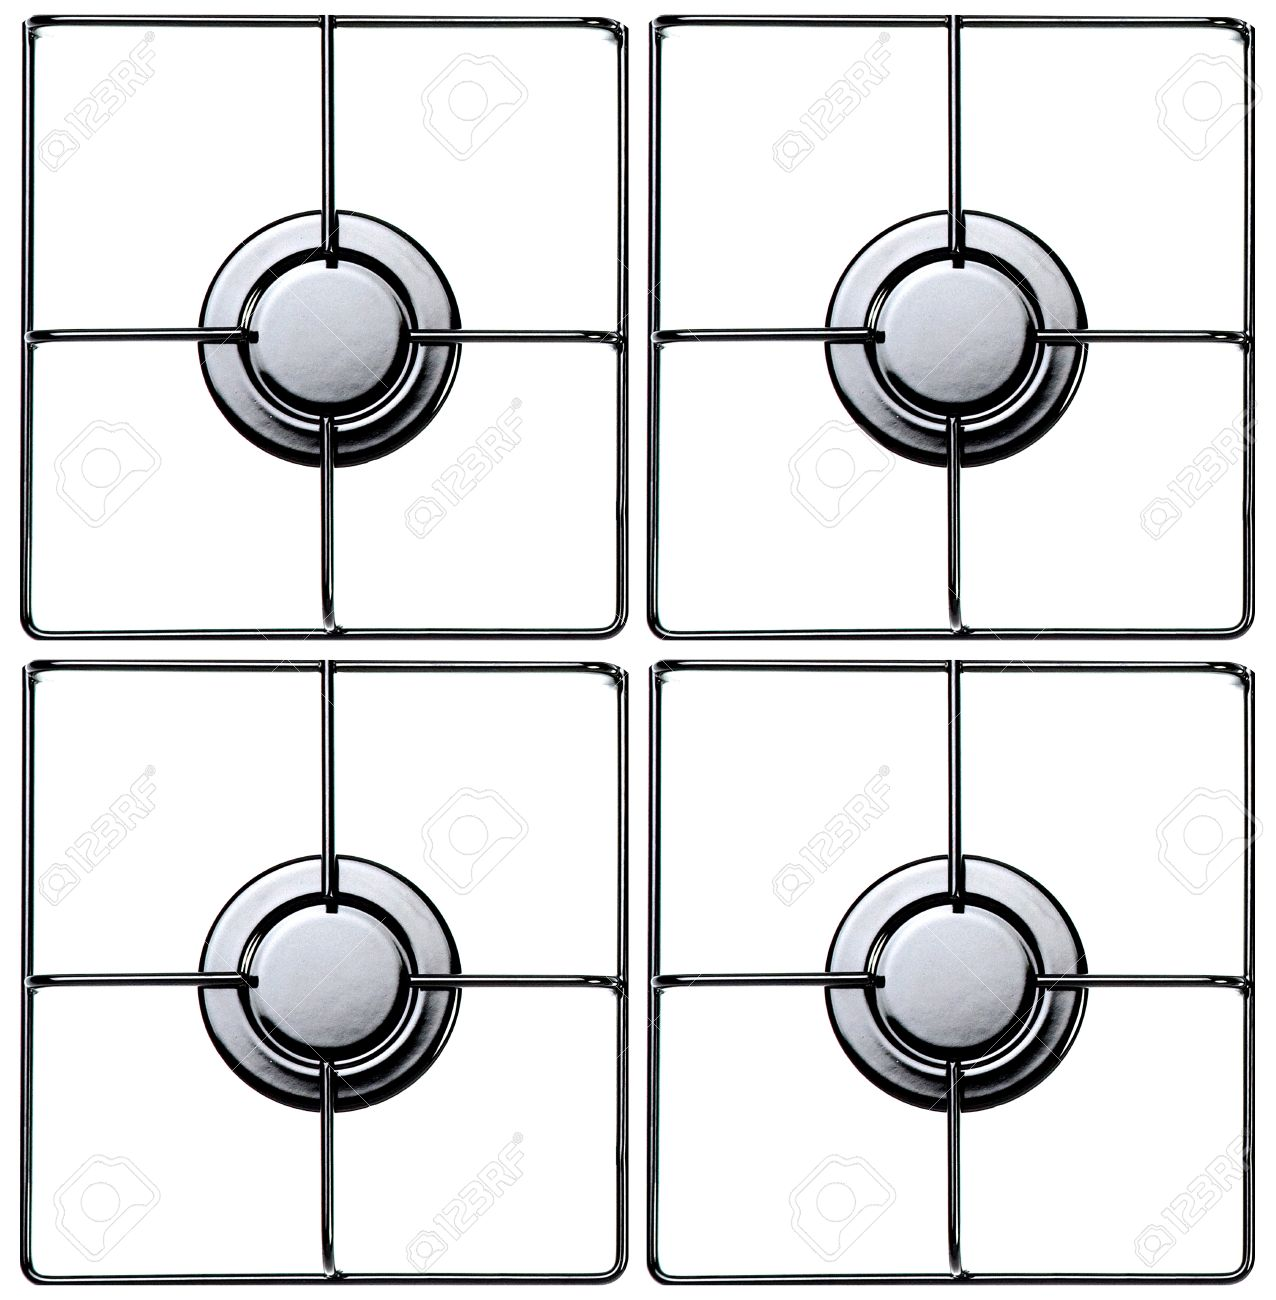 Stainless Steel Gas Hob Or Stove. Stock Photo, Picture And Royalty.